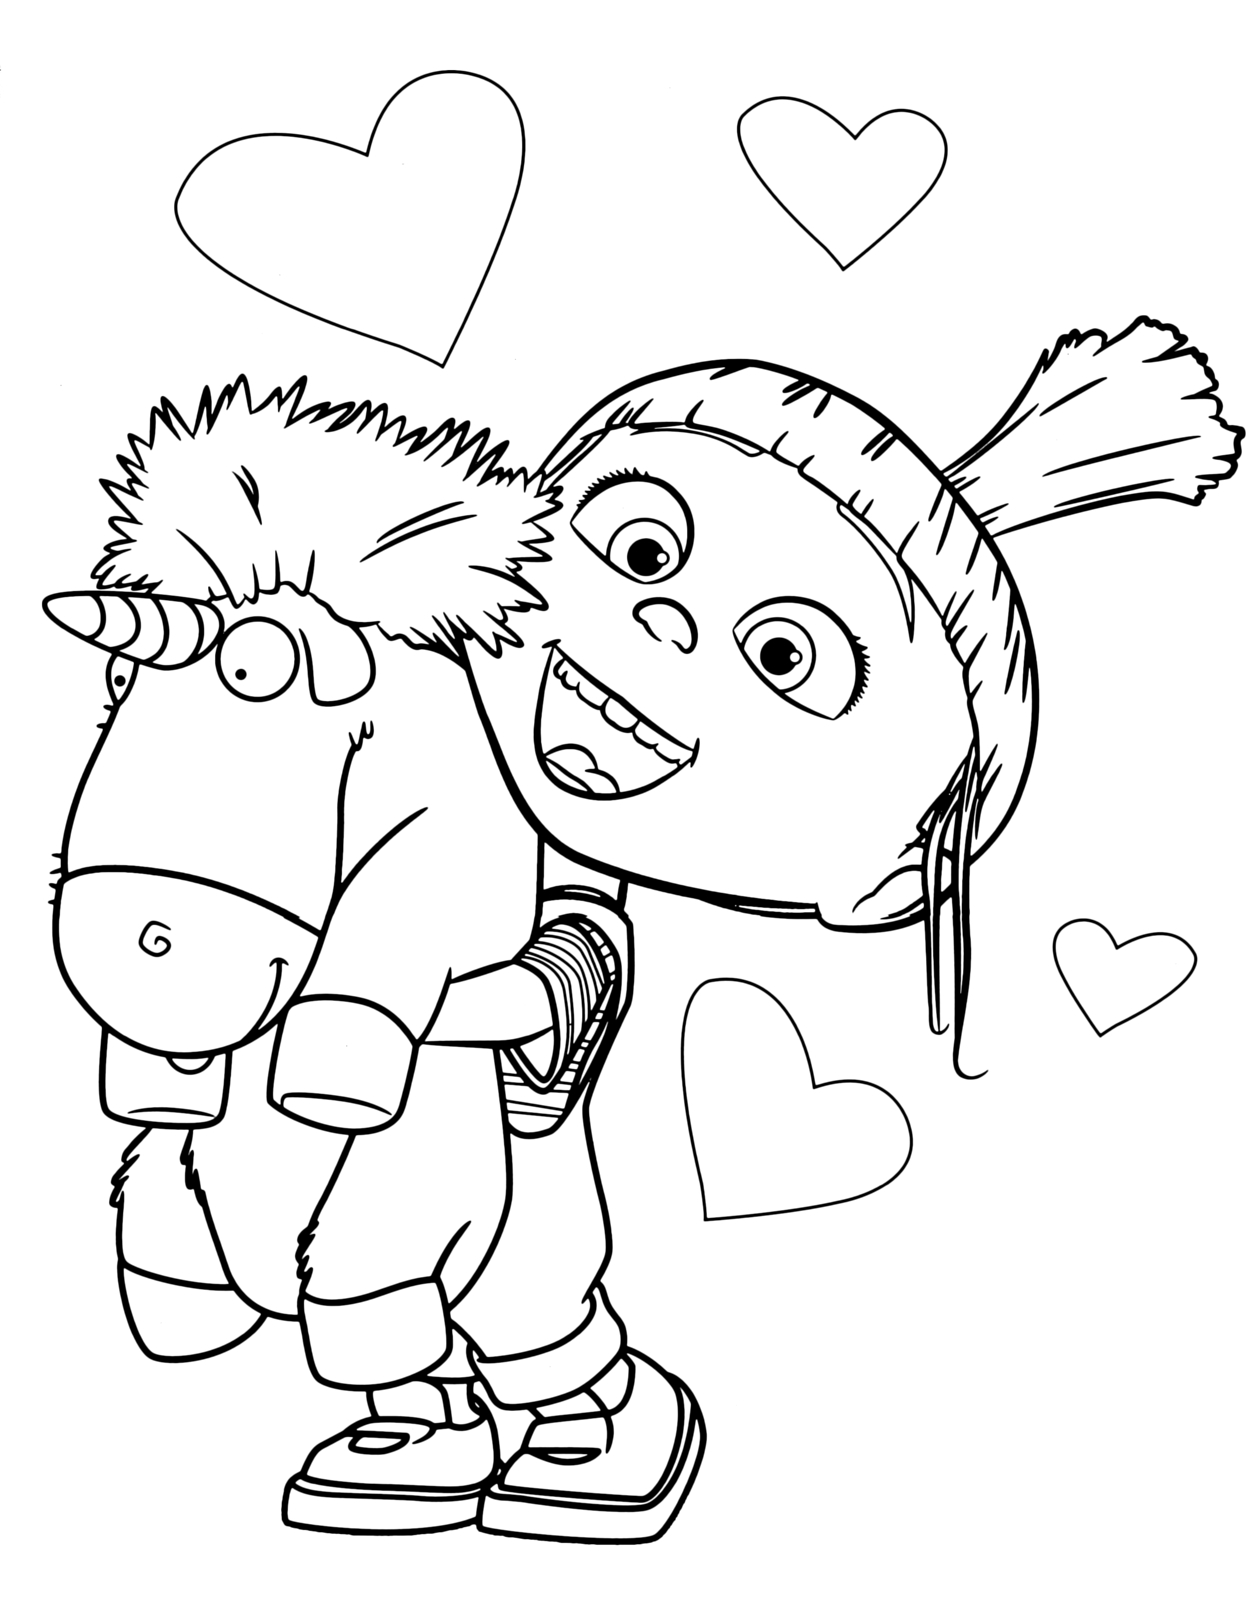 Despicable Coloring Pages Despicable Me Unicorn Coloring Pages